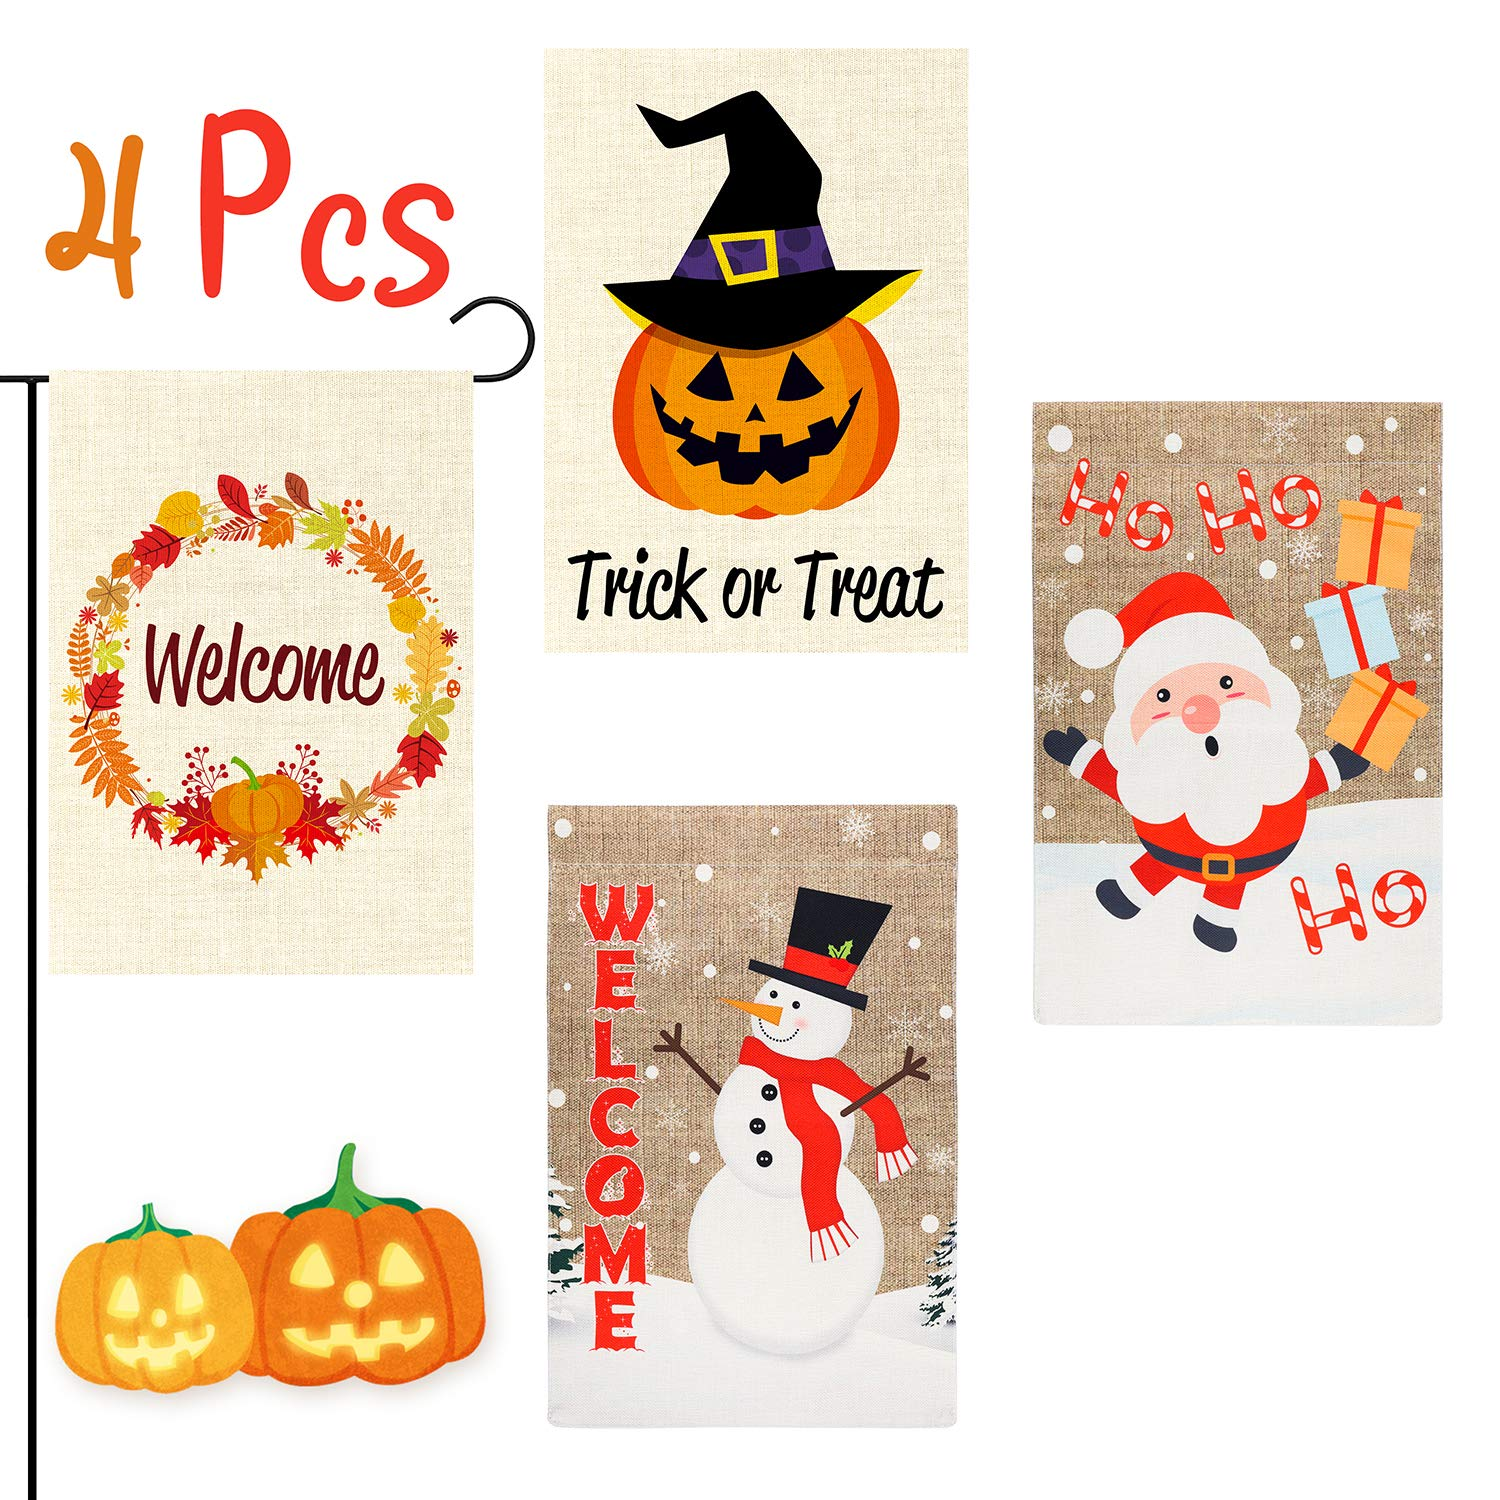 GROBRO7 4Pcs Happy Halloween Garden Flag Merry Christmas Flag Pumpkin House Decorative Snowman Welcome Santa Claus Double Sided Print Seasonal Outdoor Décor for Fall Winter Holiday 12x18 Inch